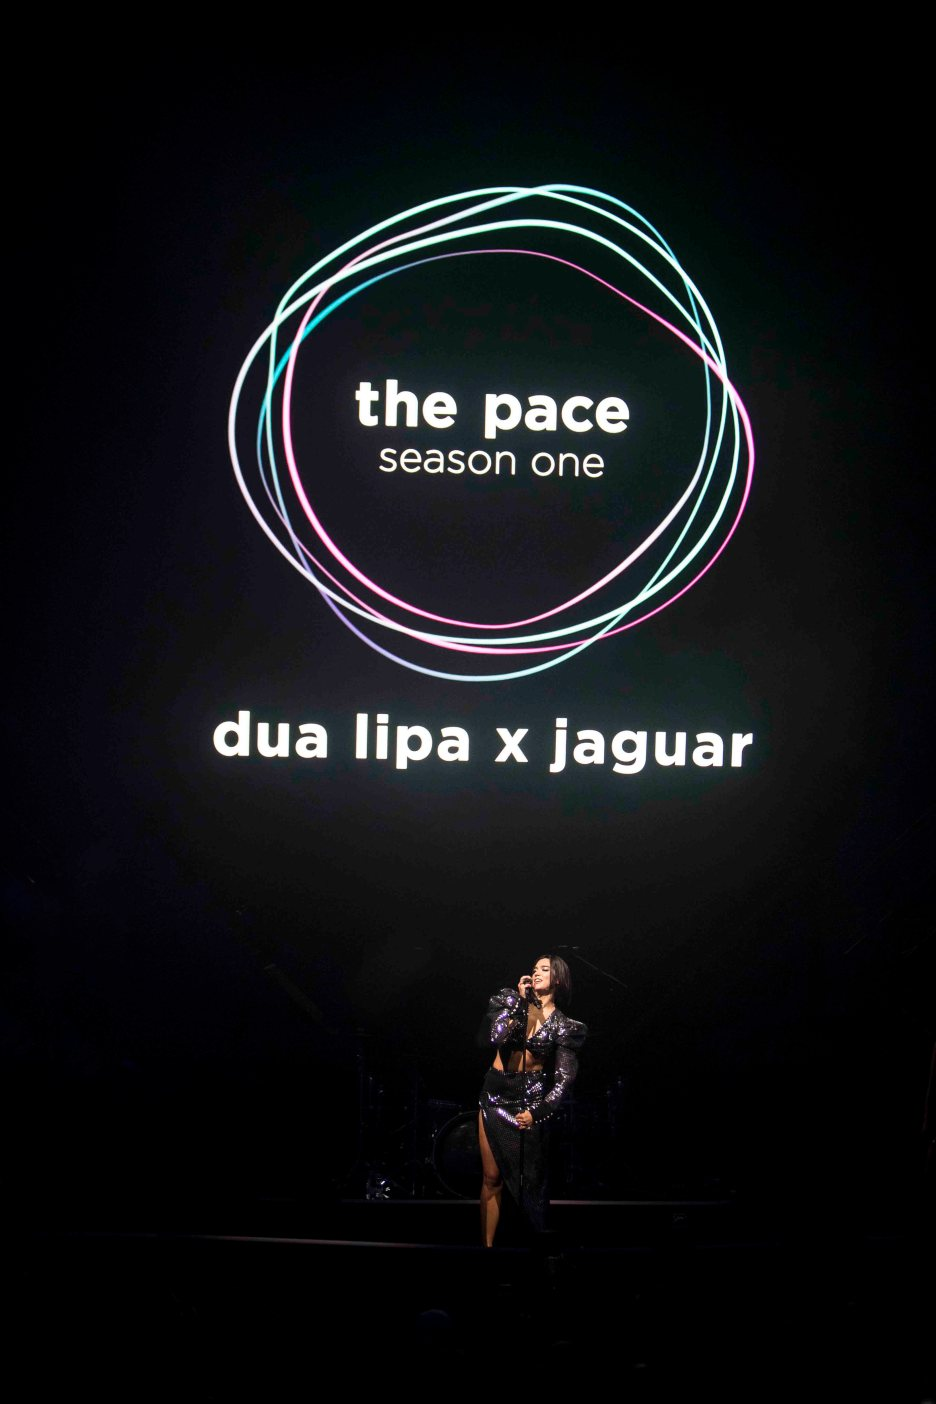 Jaguar and global superstar singer-songwriter Dua Lipa launch pioneering tech and music collaboration with live performance of exclusive remix of unreleased track, Want TO {PACE Remix} – created by utilising innovative technology from the Jaguar all-electric I-PACE - at Sugar City in Amsterdam, Netherlands. Fans can personalise their own version of Dua Lipa's latest track Want TO {PACE Remix} at remix.jointhepace.com, from data captured by the all-electric I-PACE, through Spotify, or by tapping a rhythm on a mobile. #thepace #jaguar